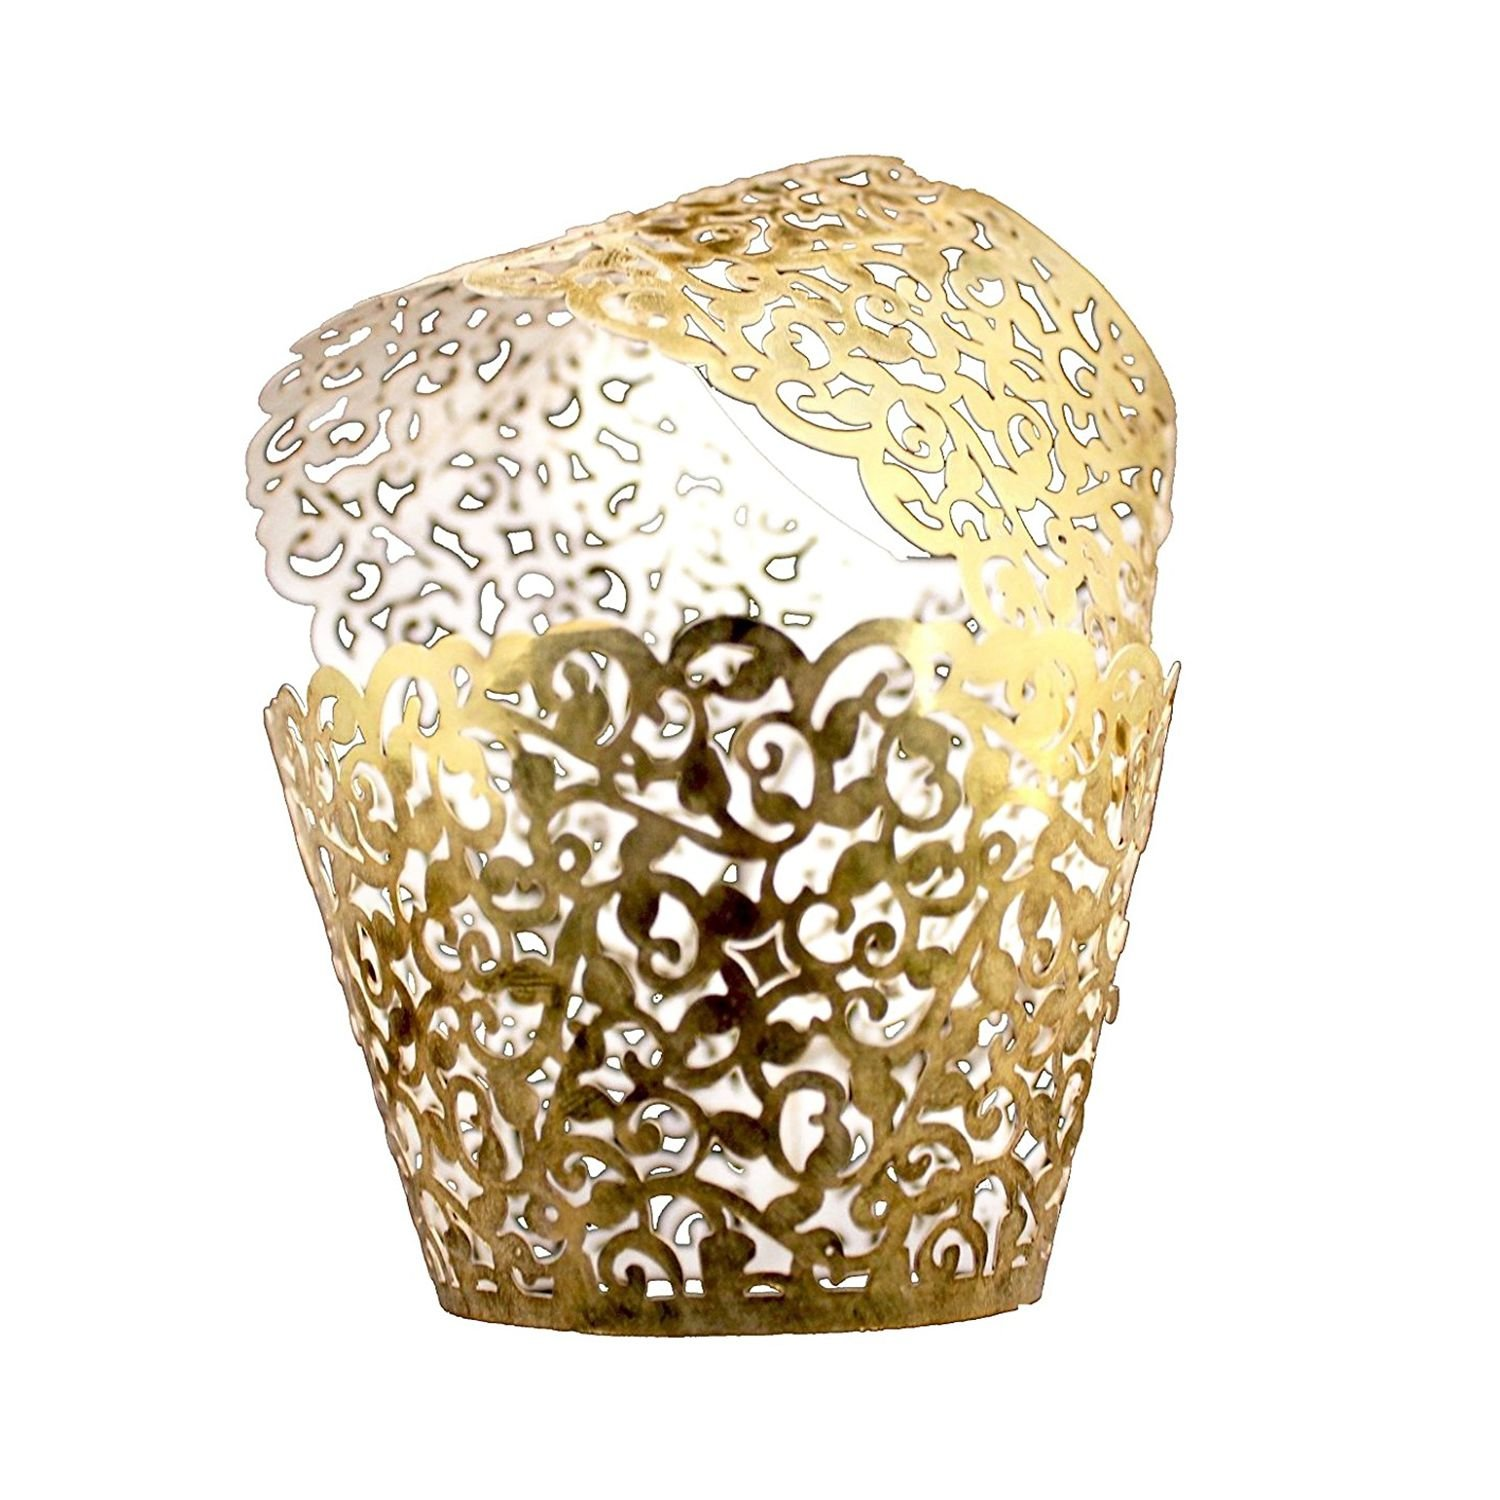 SODIAL Vine Cupcake Holders Filigree Vine Designed Decor Wrapper Wraps Cupcake Muffin Paper Holders - 50pcs (Bright Gold)